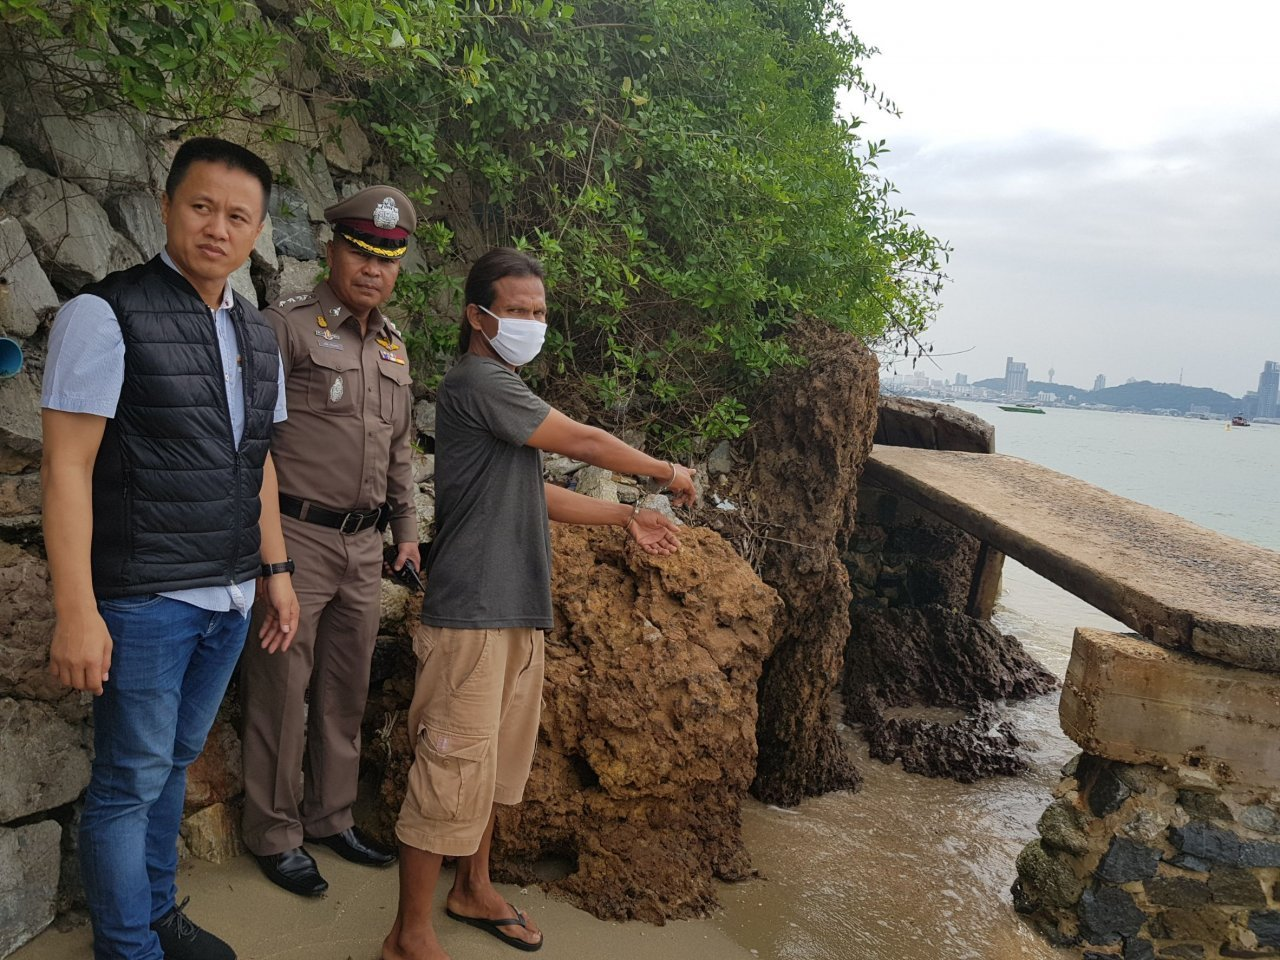 Pattaya beach 'thief' arrested. Pattaya police have arrested a man for allegedly stealing the clothes and cash of two Thai tourists who were taking a night